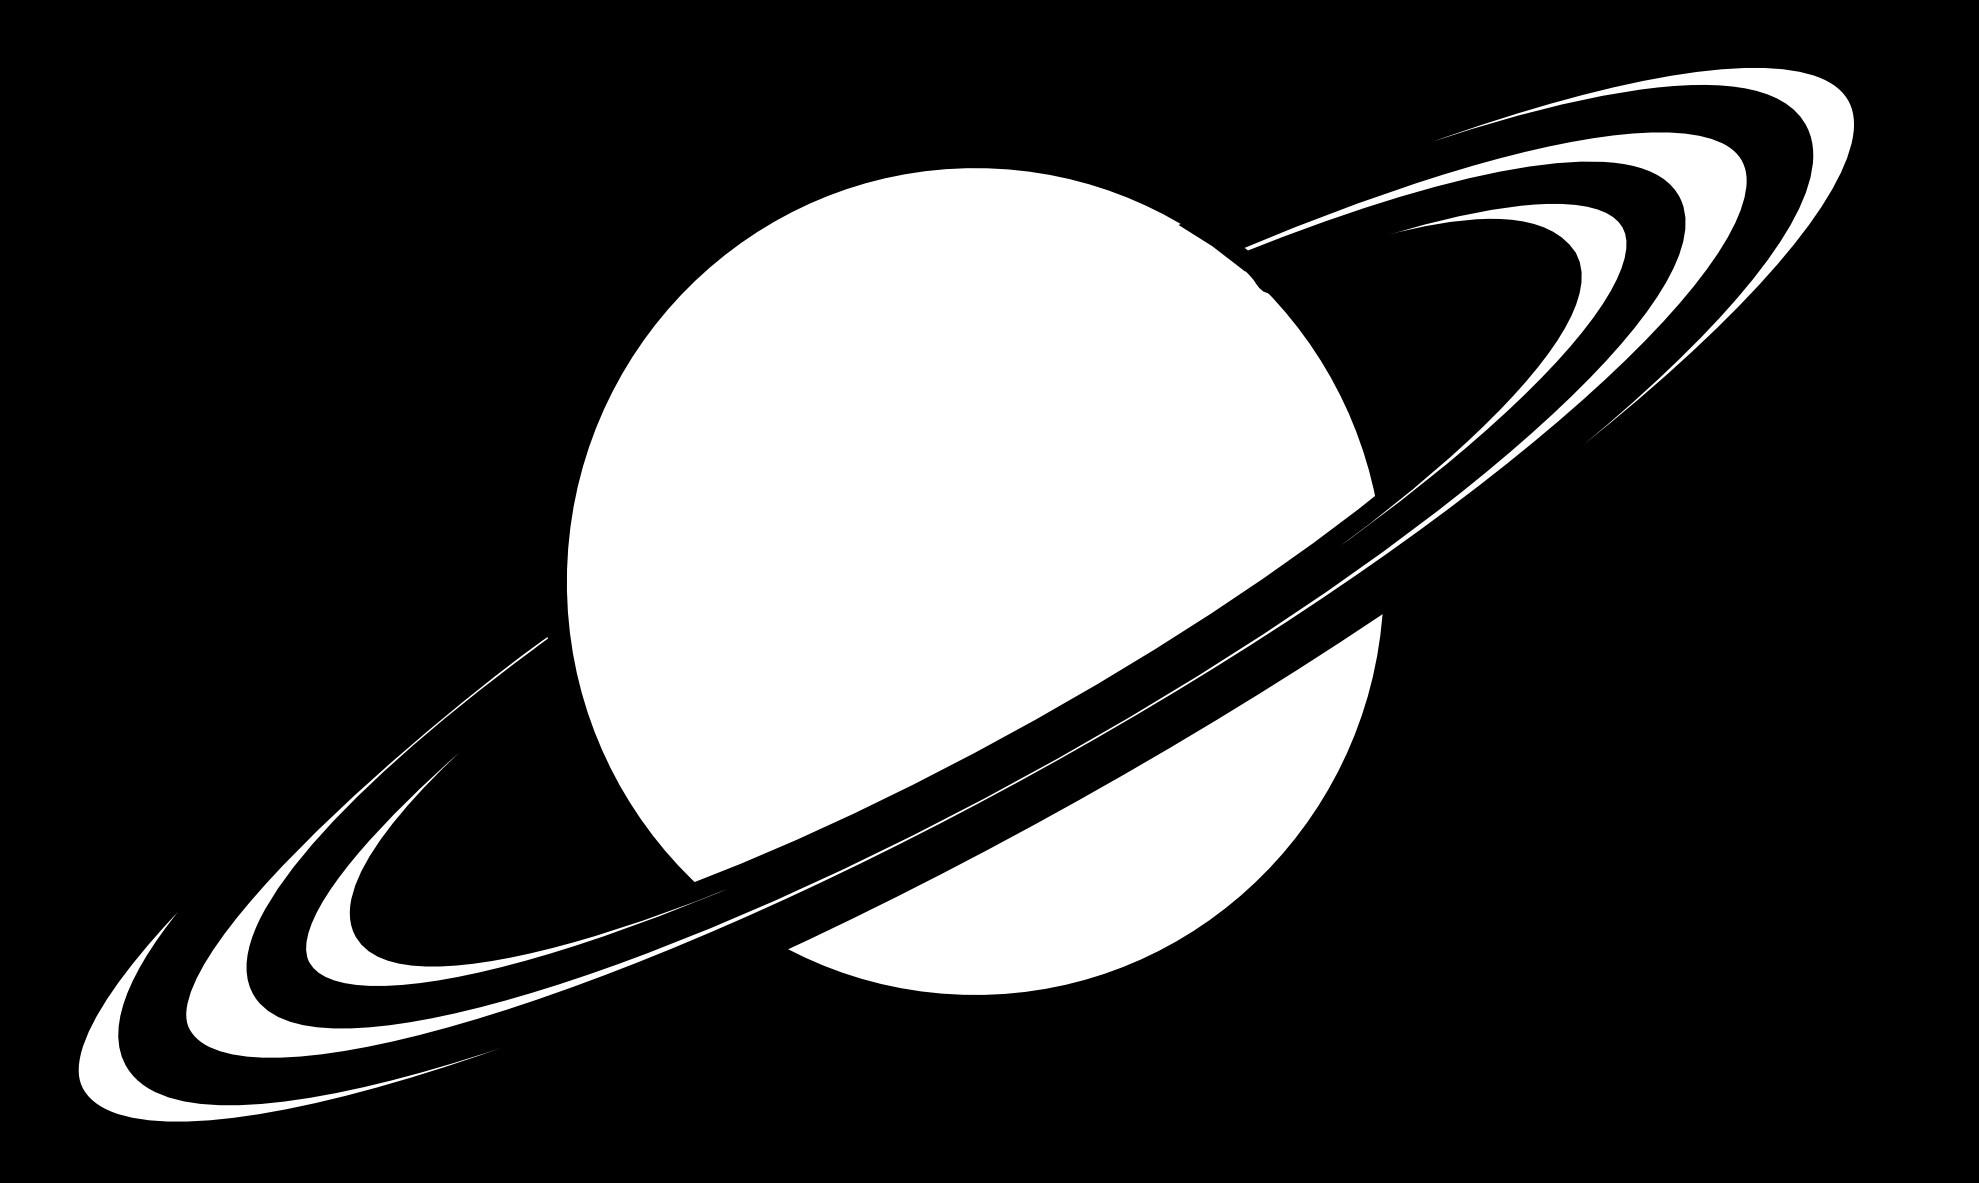 Saturn Clipart Page 1.